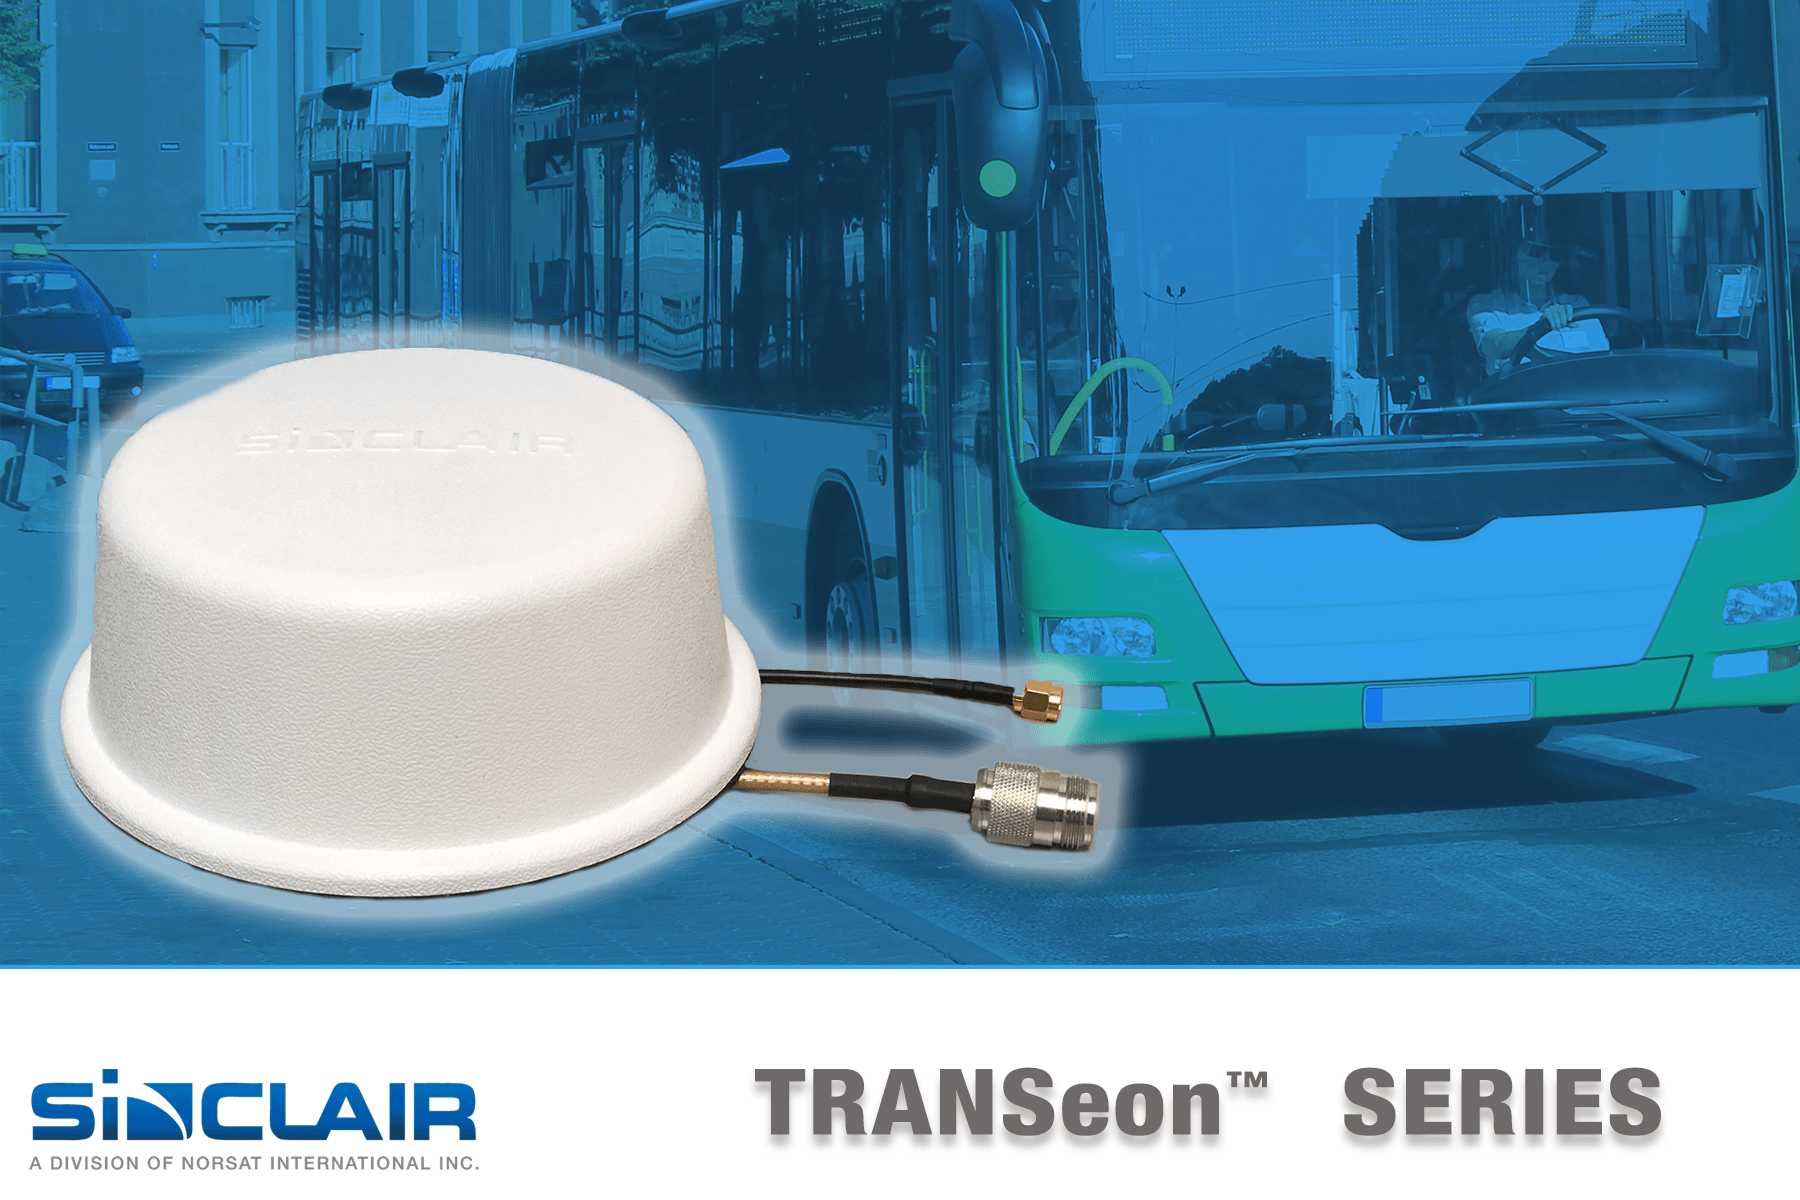 Sinclair Technologies Announces the TRANSeon Series of Mobile Antennas for Transportation